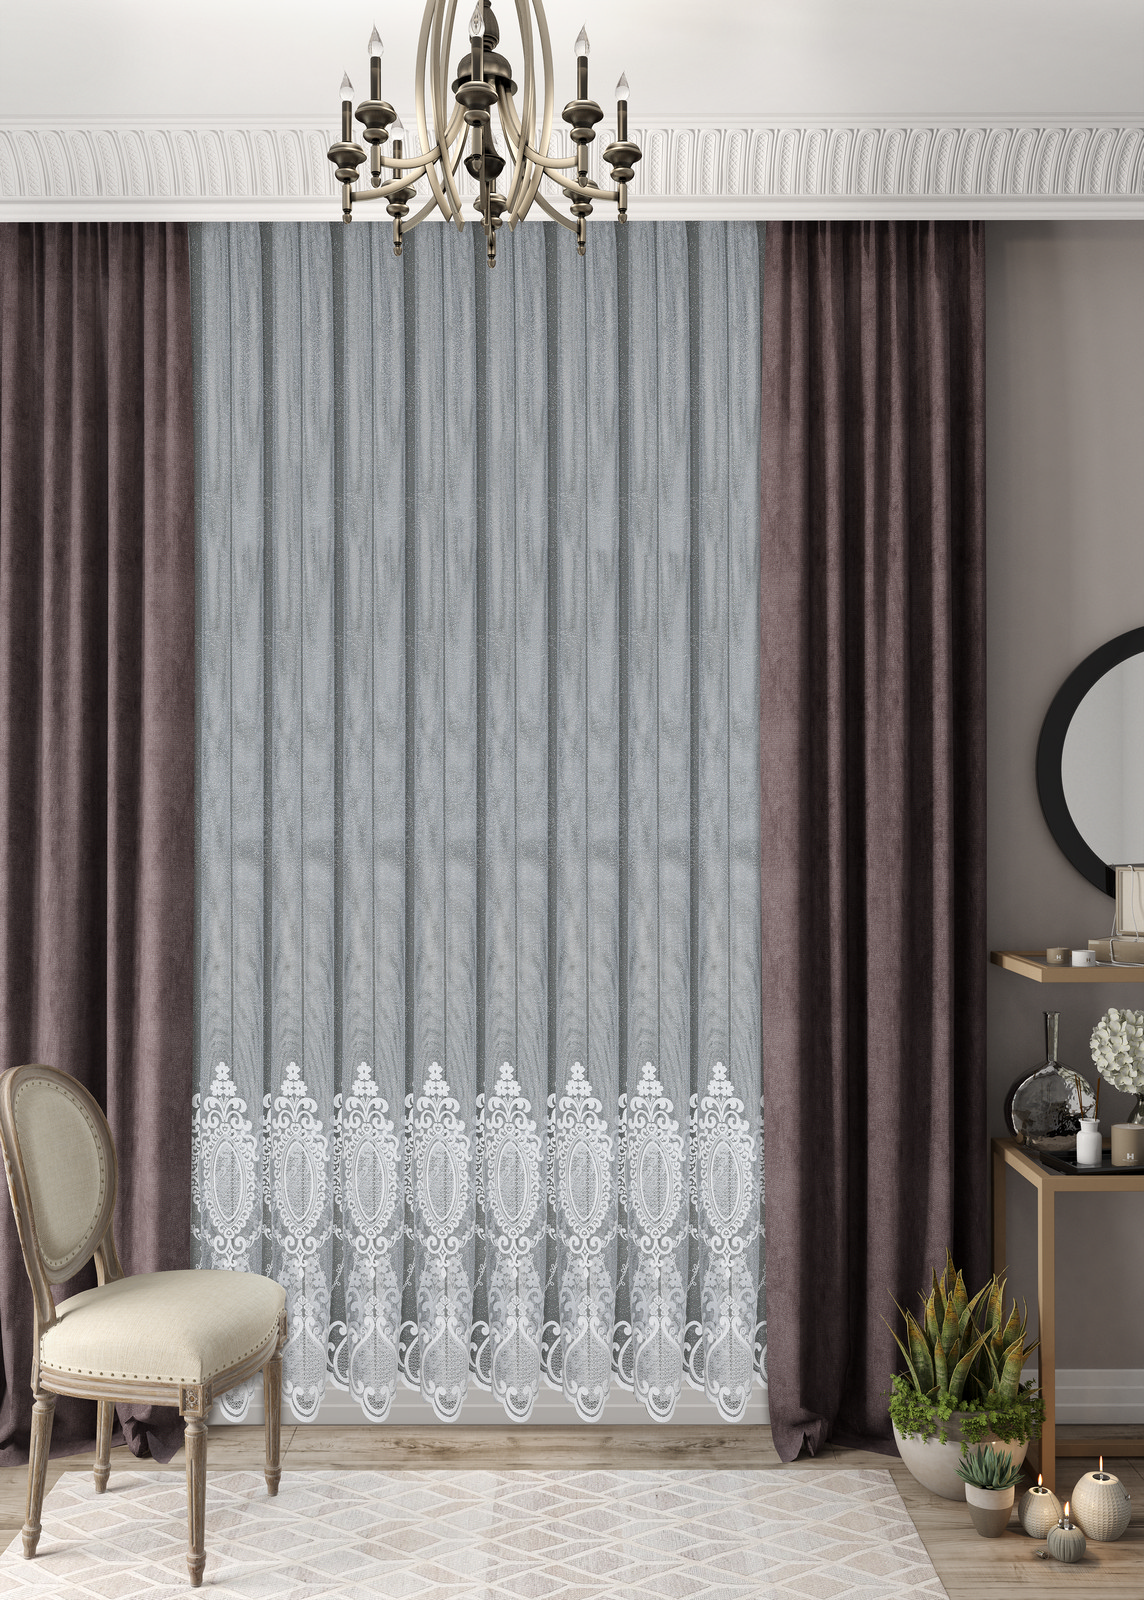 The Best Noise Reducing Blinds for Windows